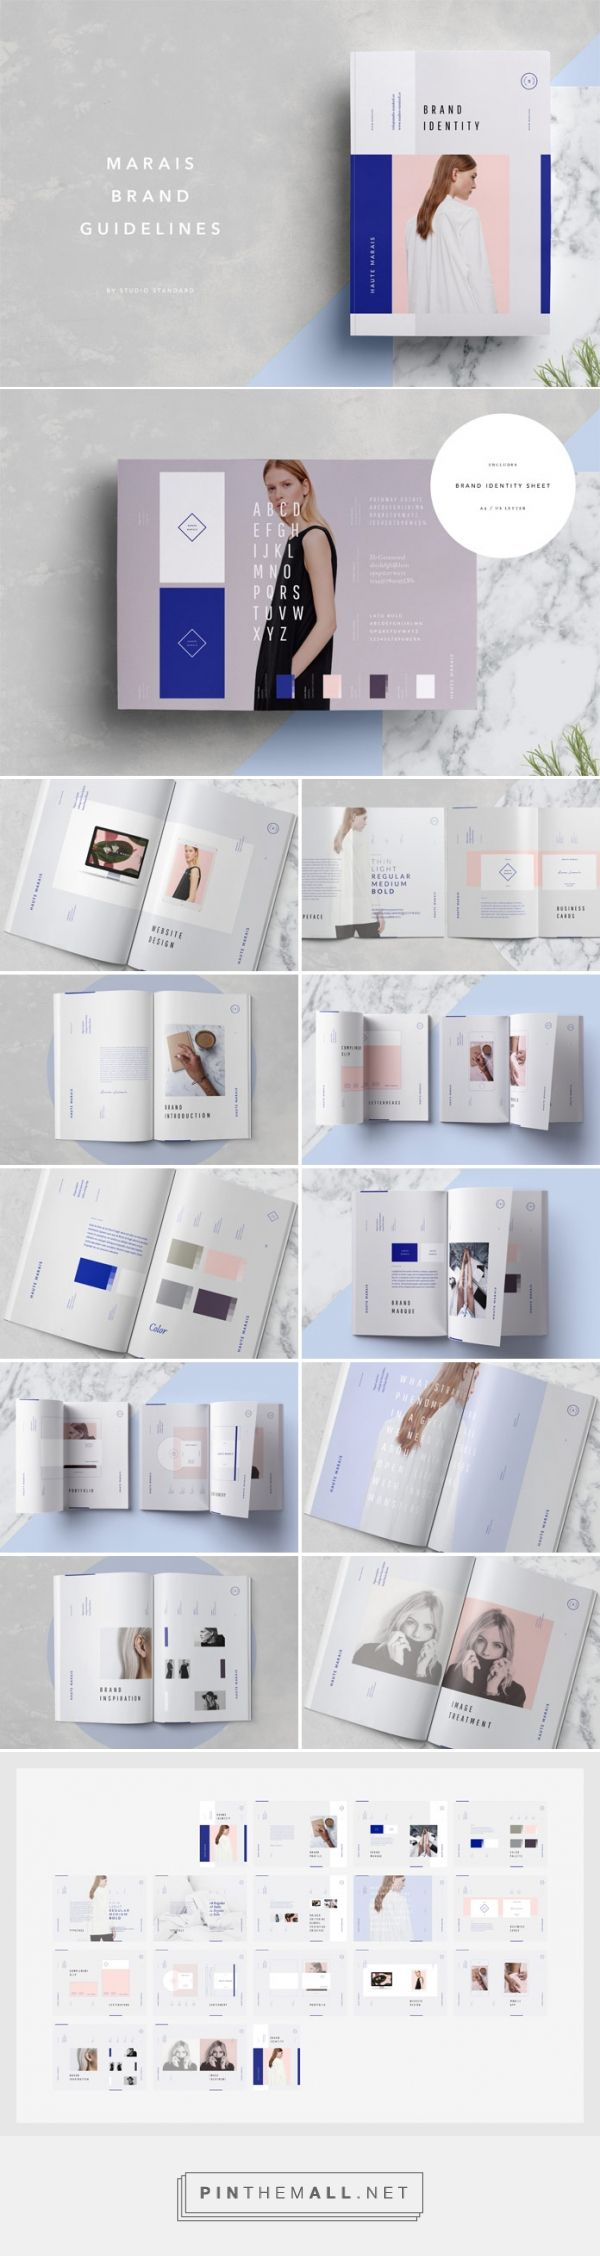 Marais – Adobe InDesign Brand Guidelines Template